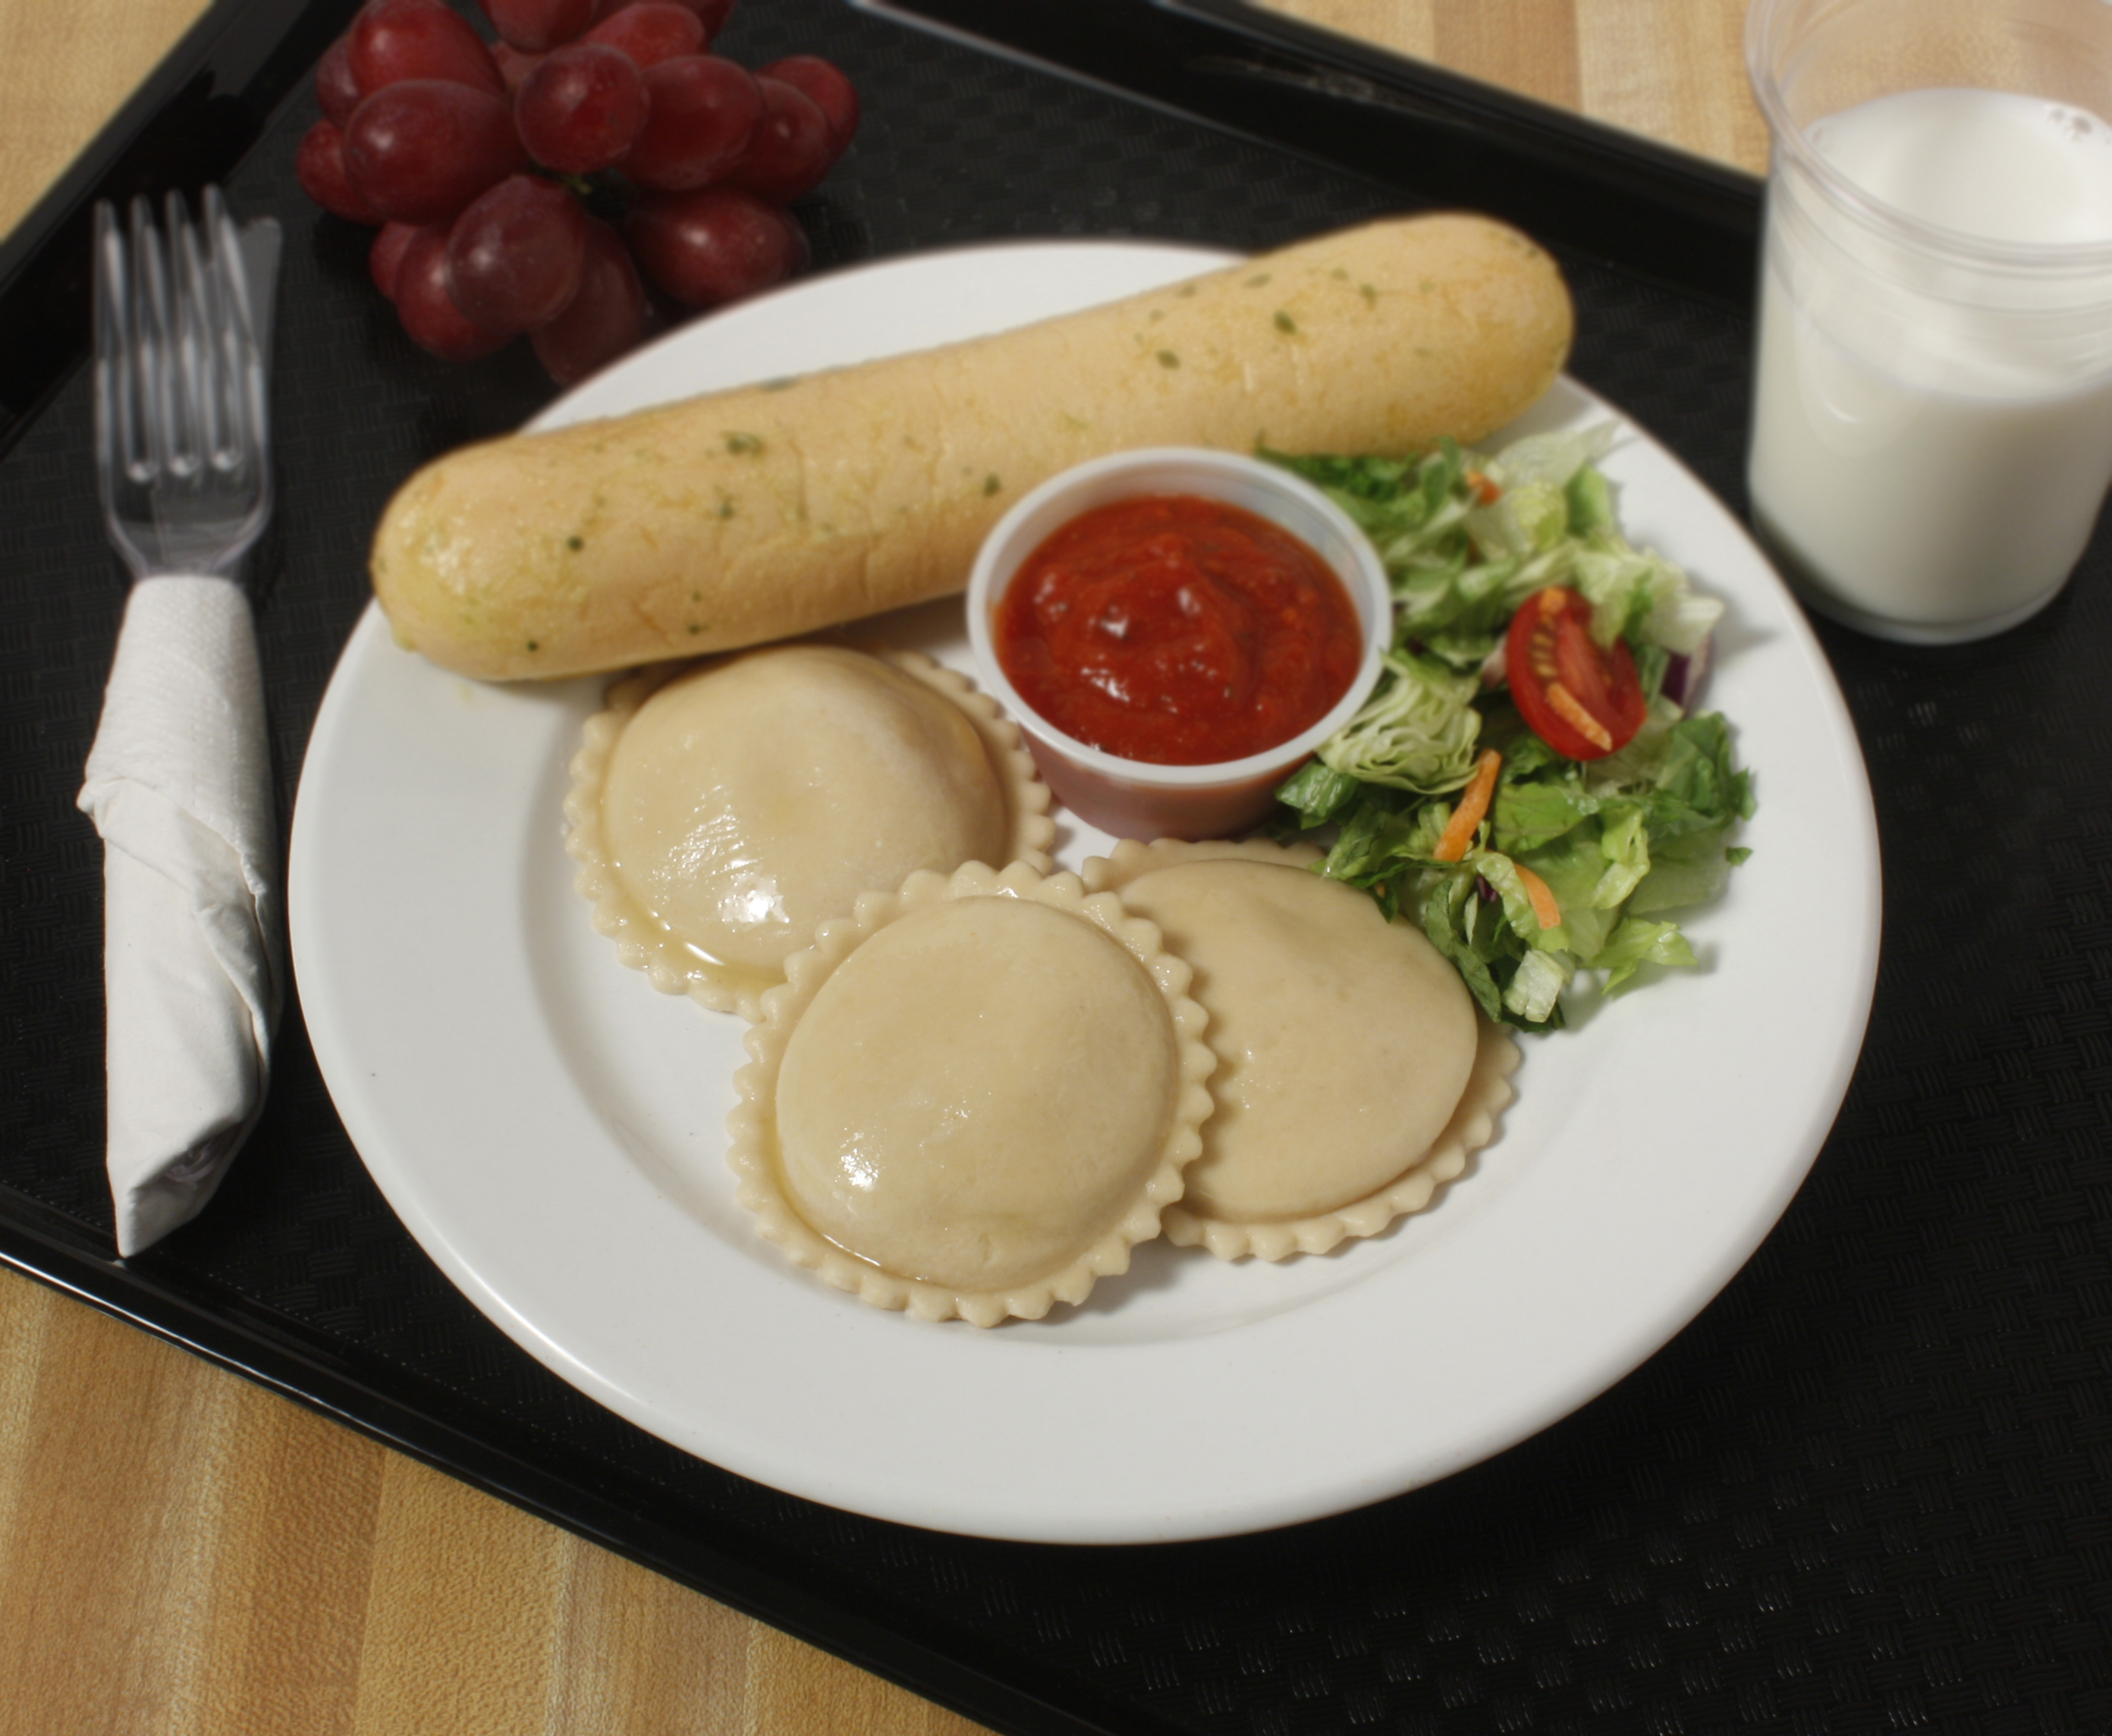 Plate of foodservice Bernardi Italian Ravioli with Salad and a Breadstick in a school setting